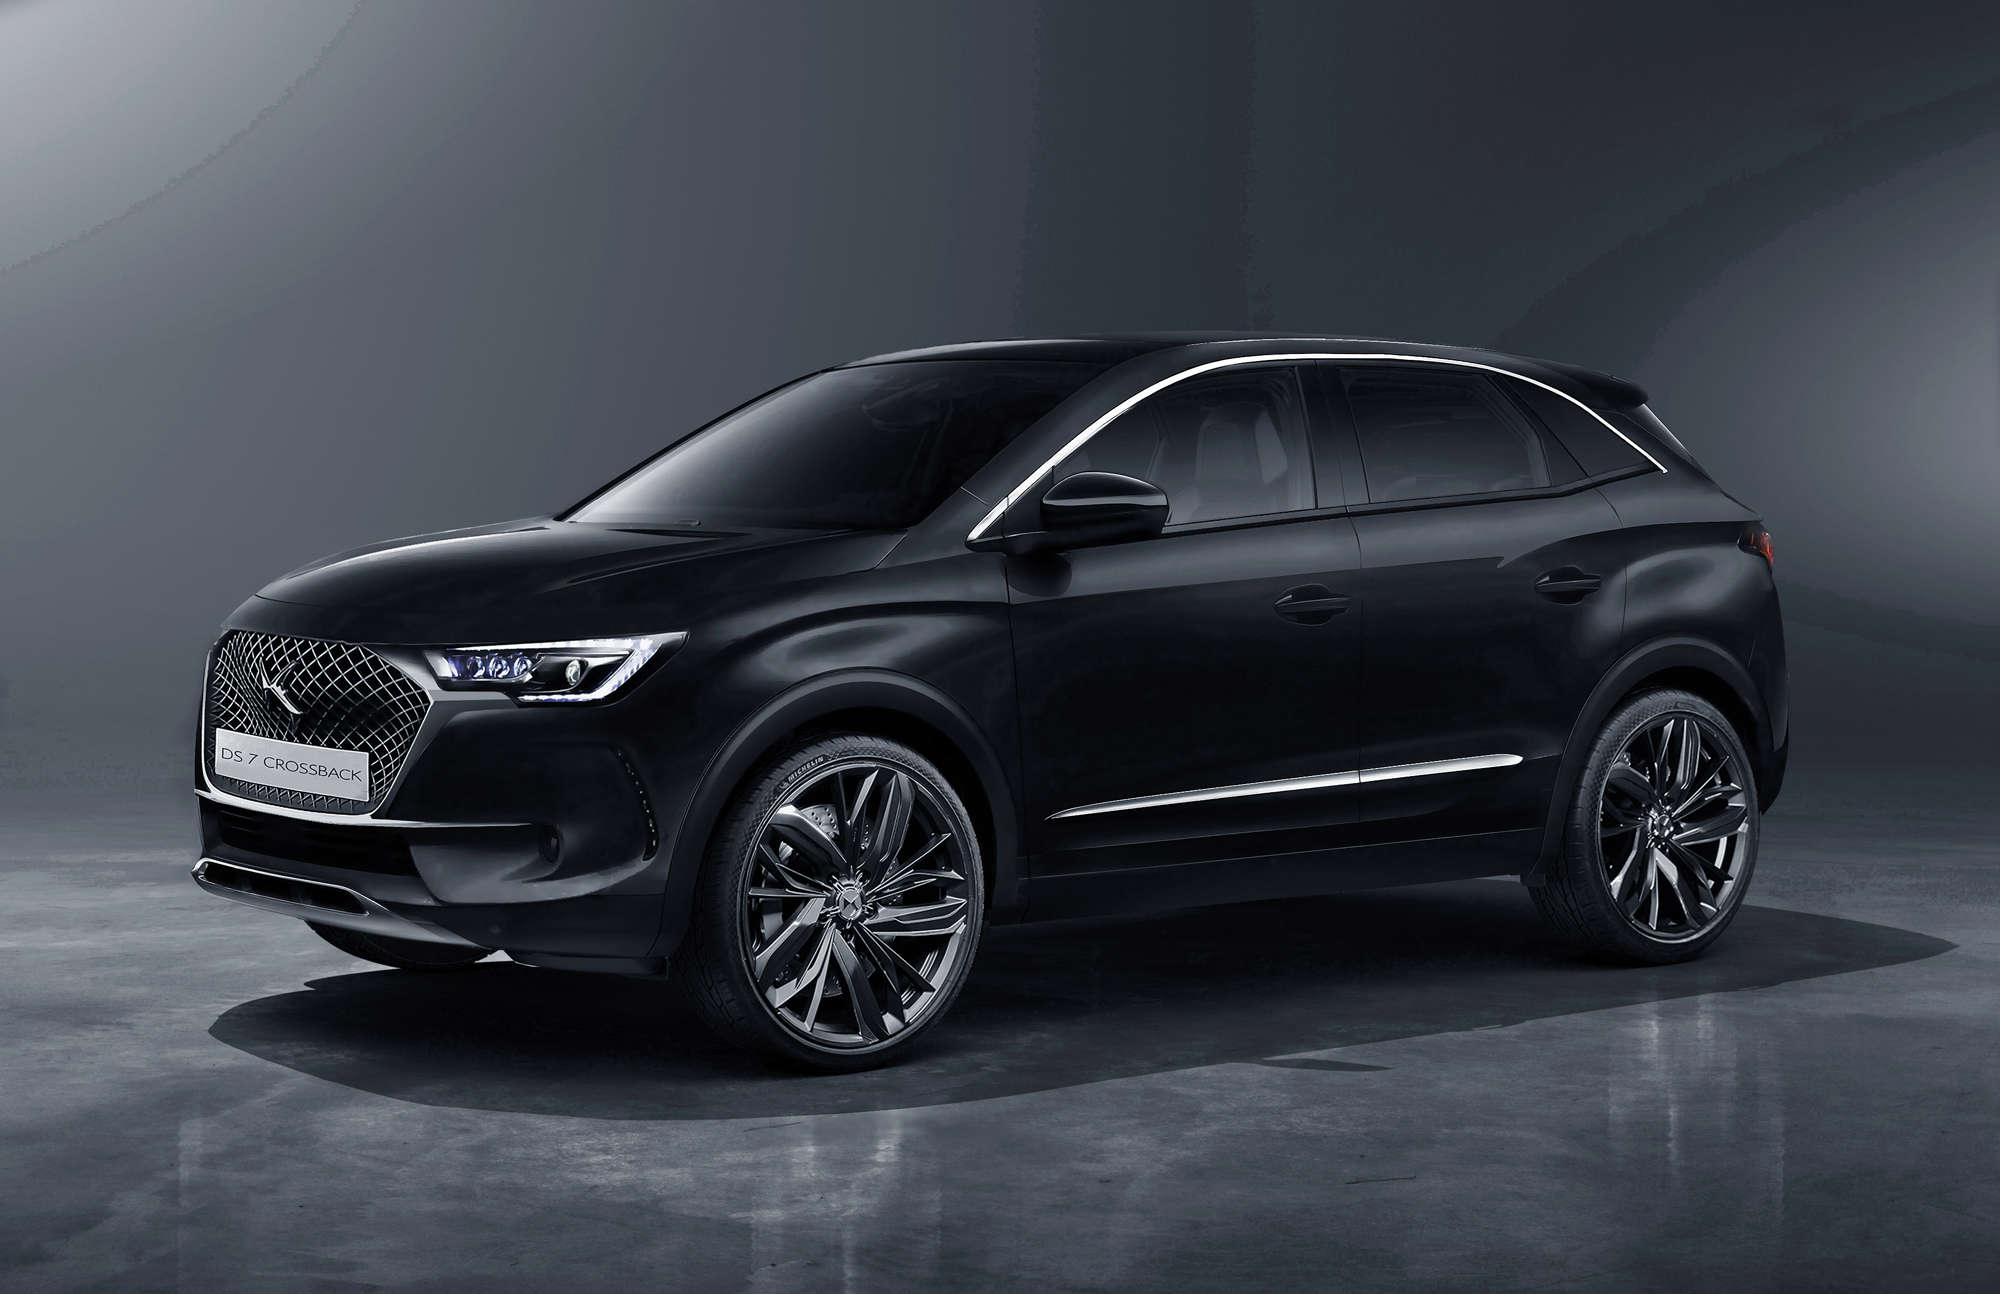 2018 ds automobiles ds 7 crossback x74 page 28. Black Bedroom Furniture Sets. Home Design Ideas